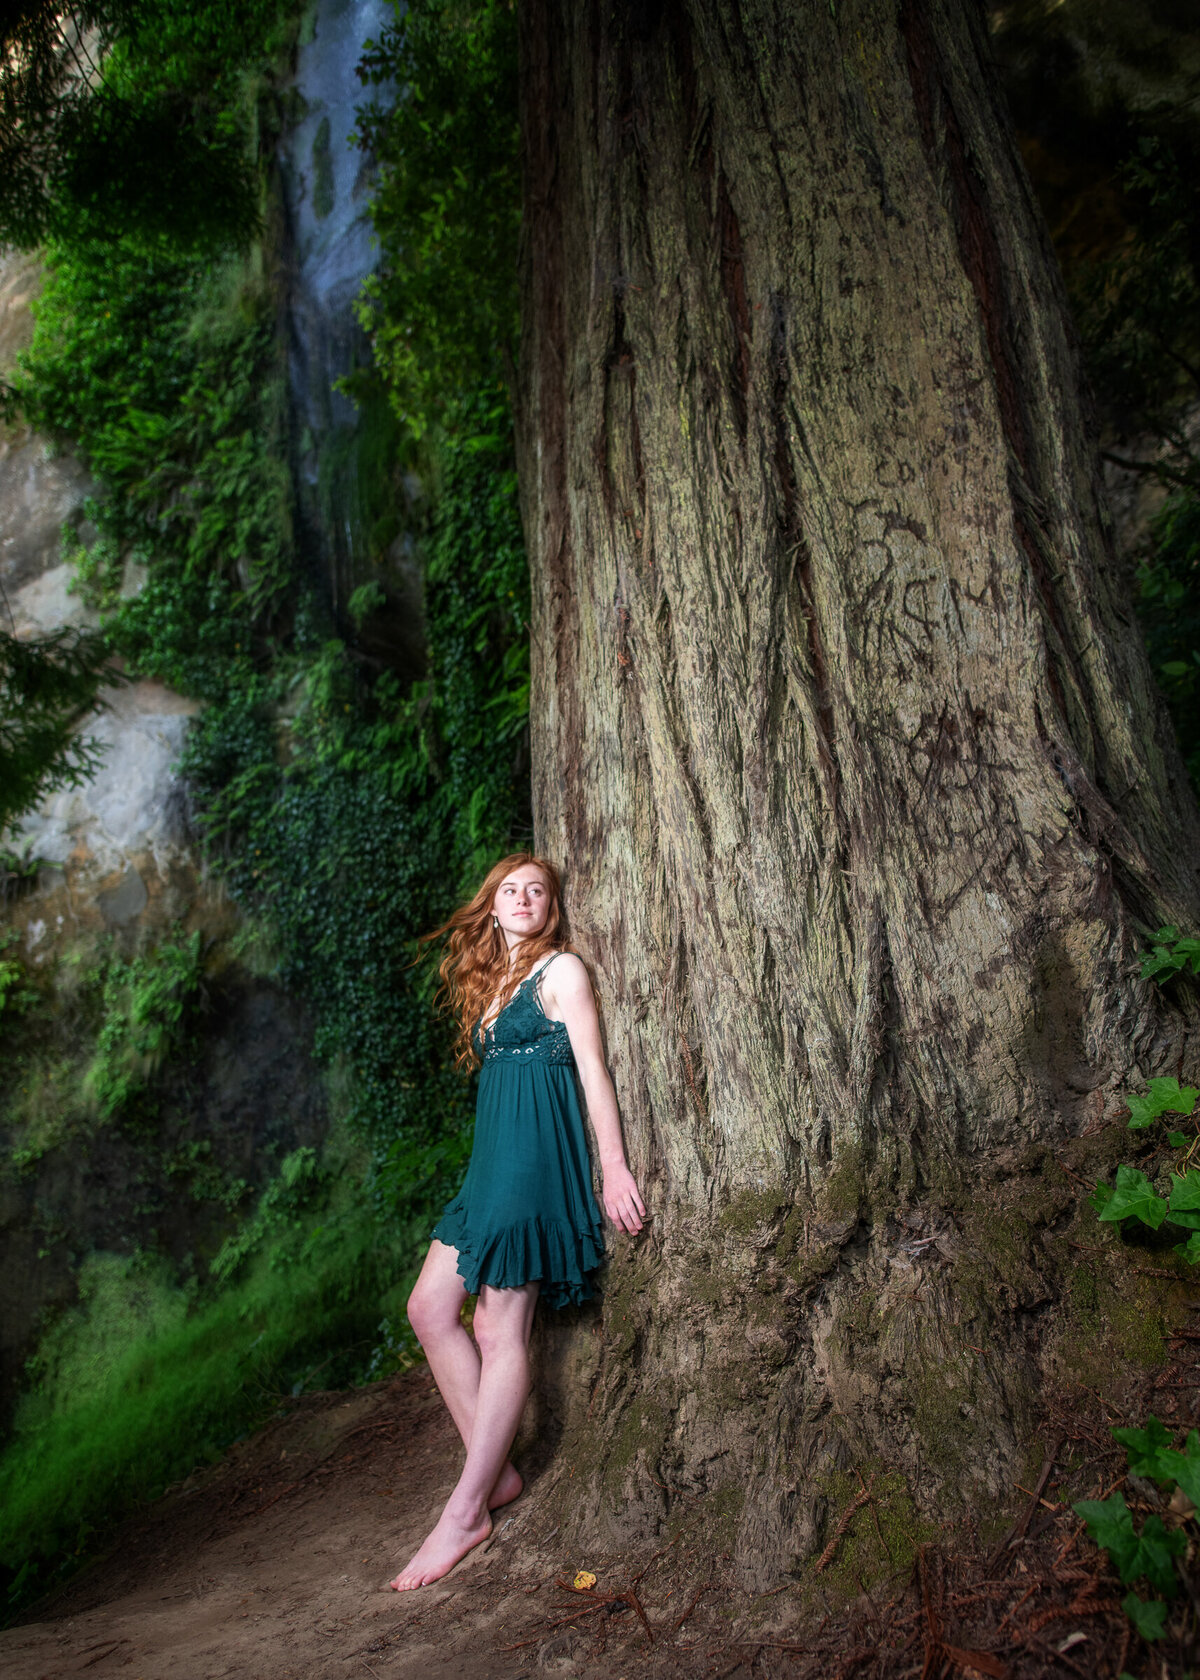 Humboldt-County-Senior-Photographer-Parky's-Pics-river-session-5